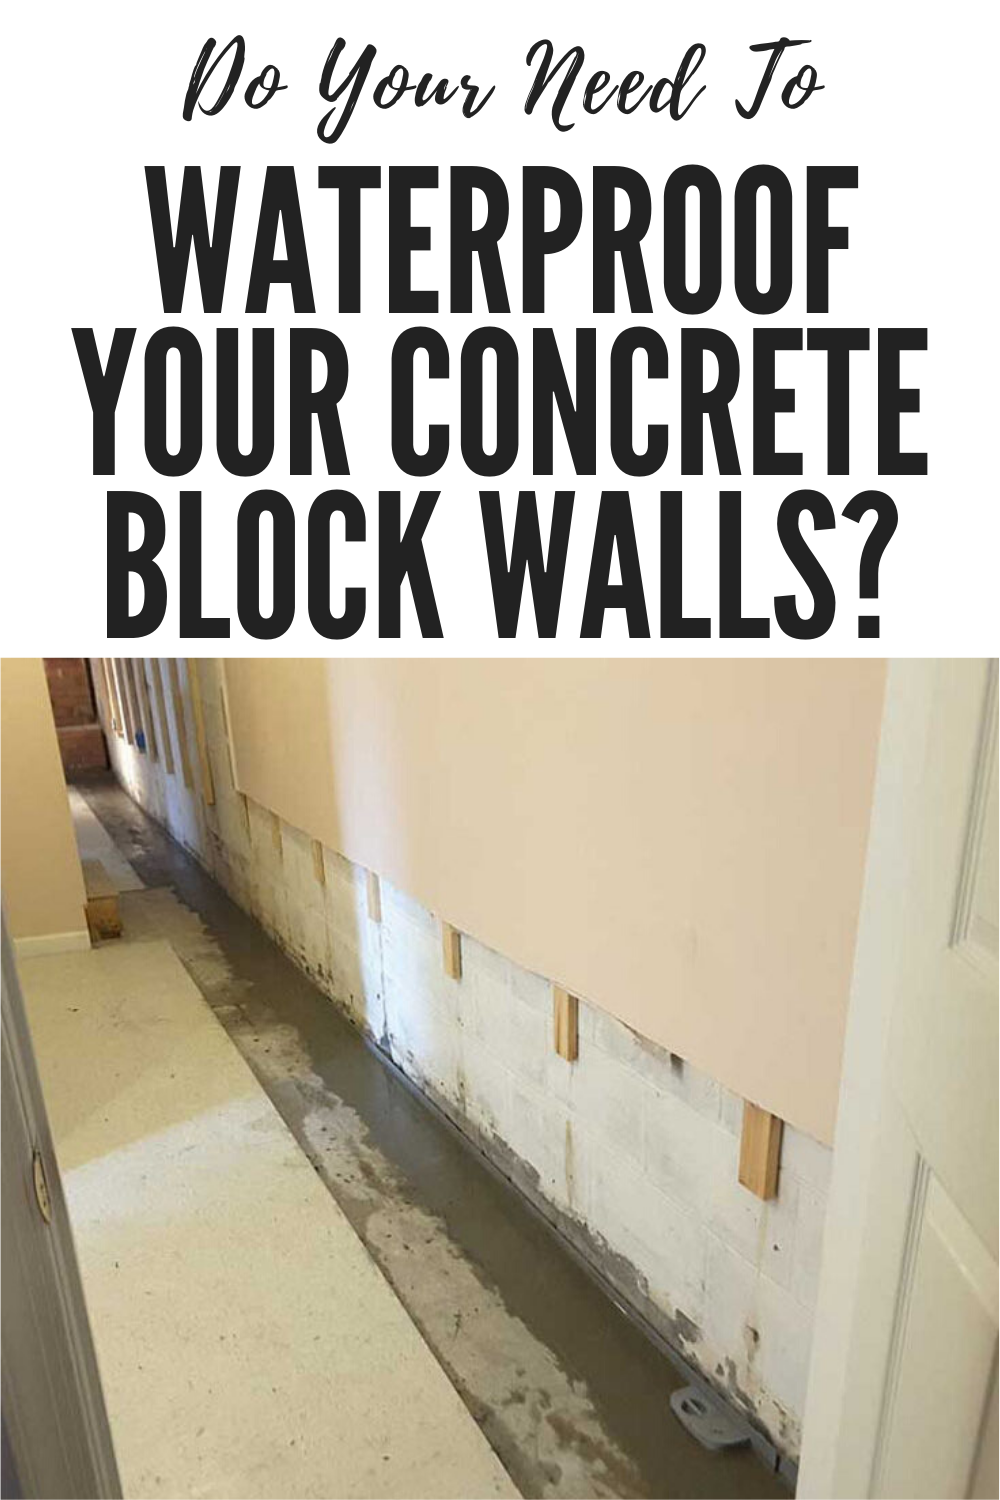 Do Your Need To Waterproof Your Concrete Block Walls Jes Foundation Repair In 2020 Concrete Block Walls Concrete Blocks Block Wall